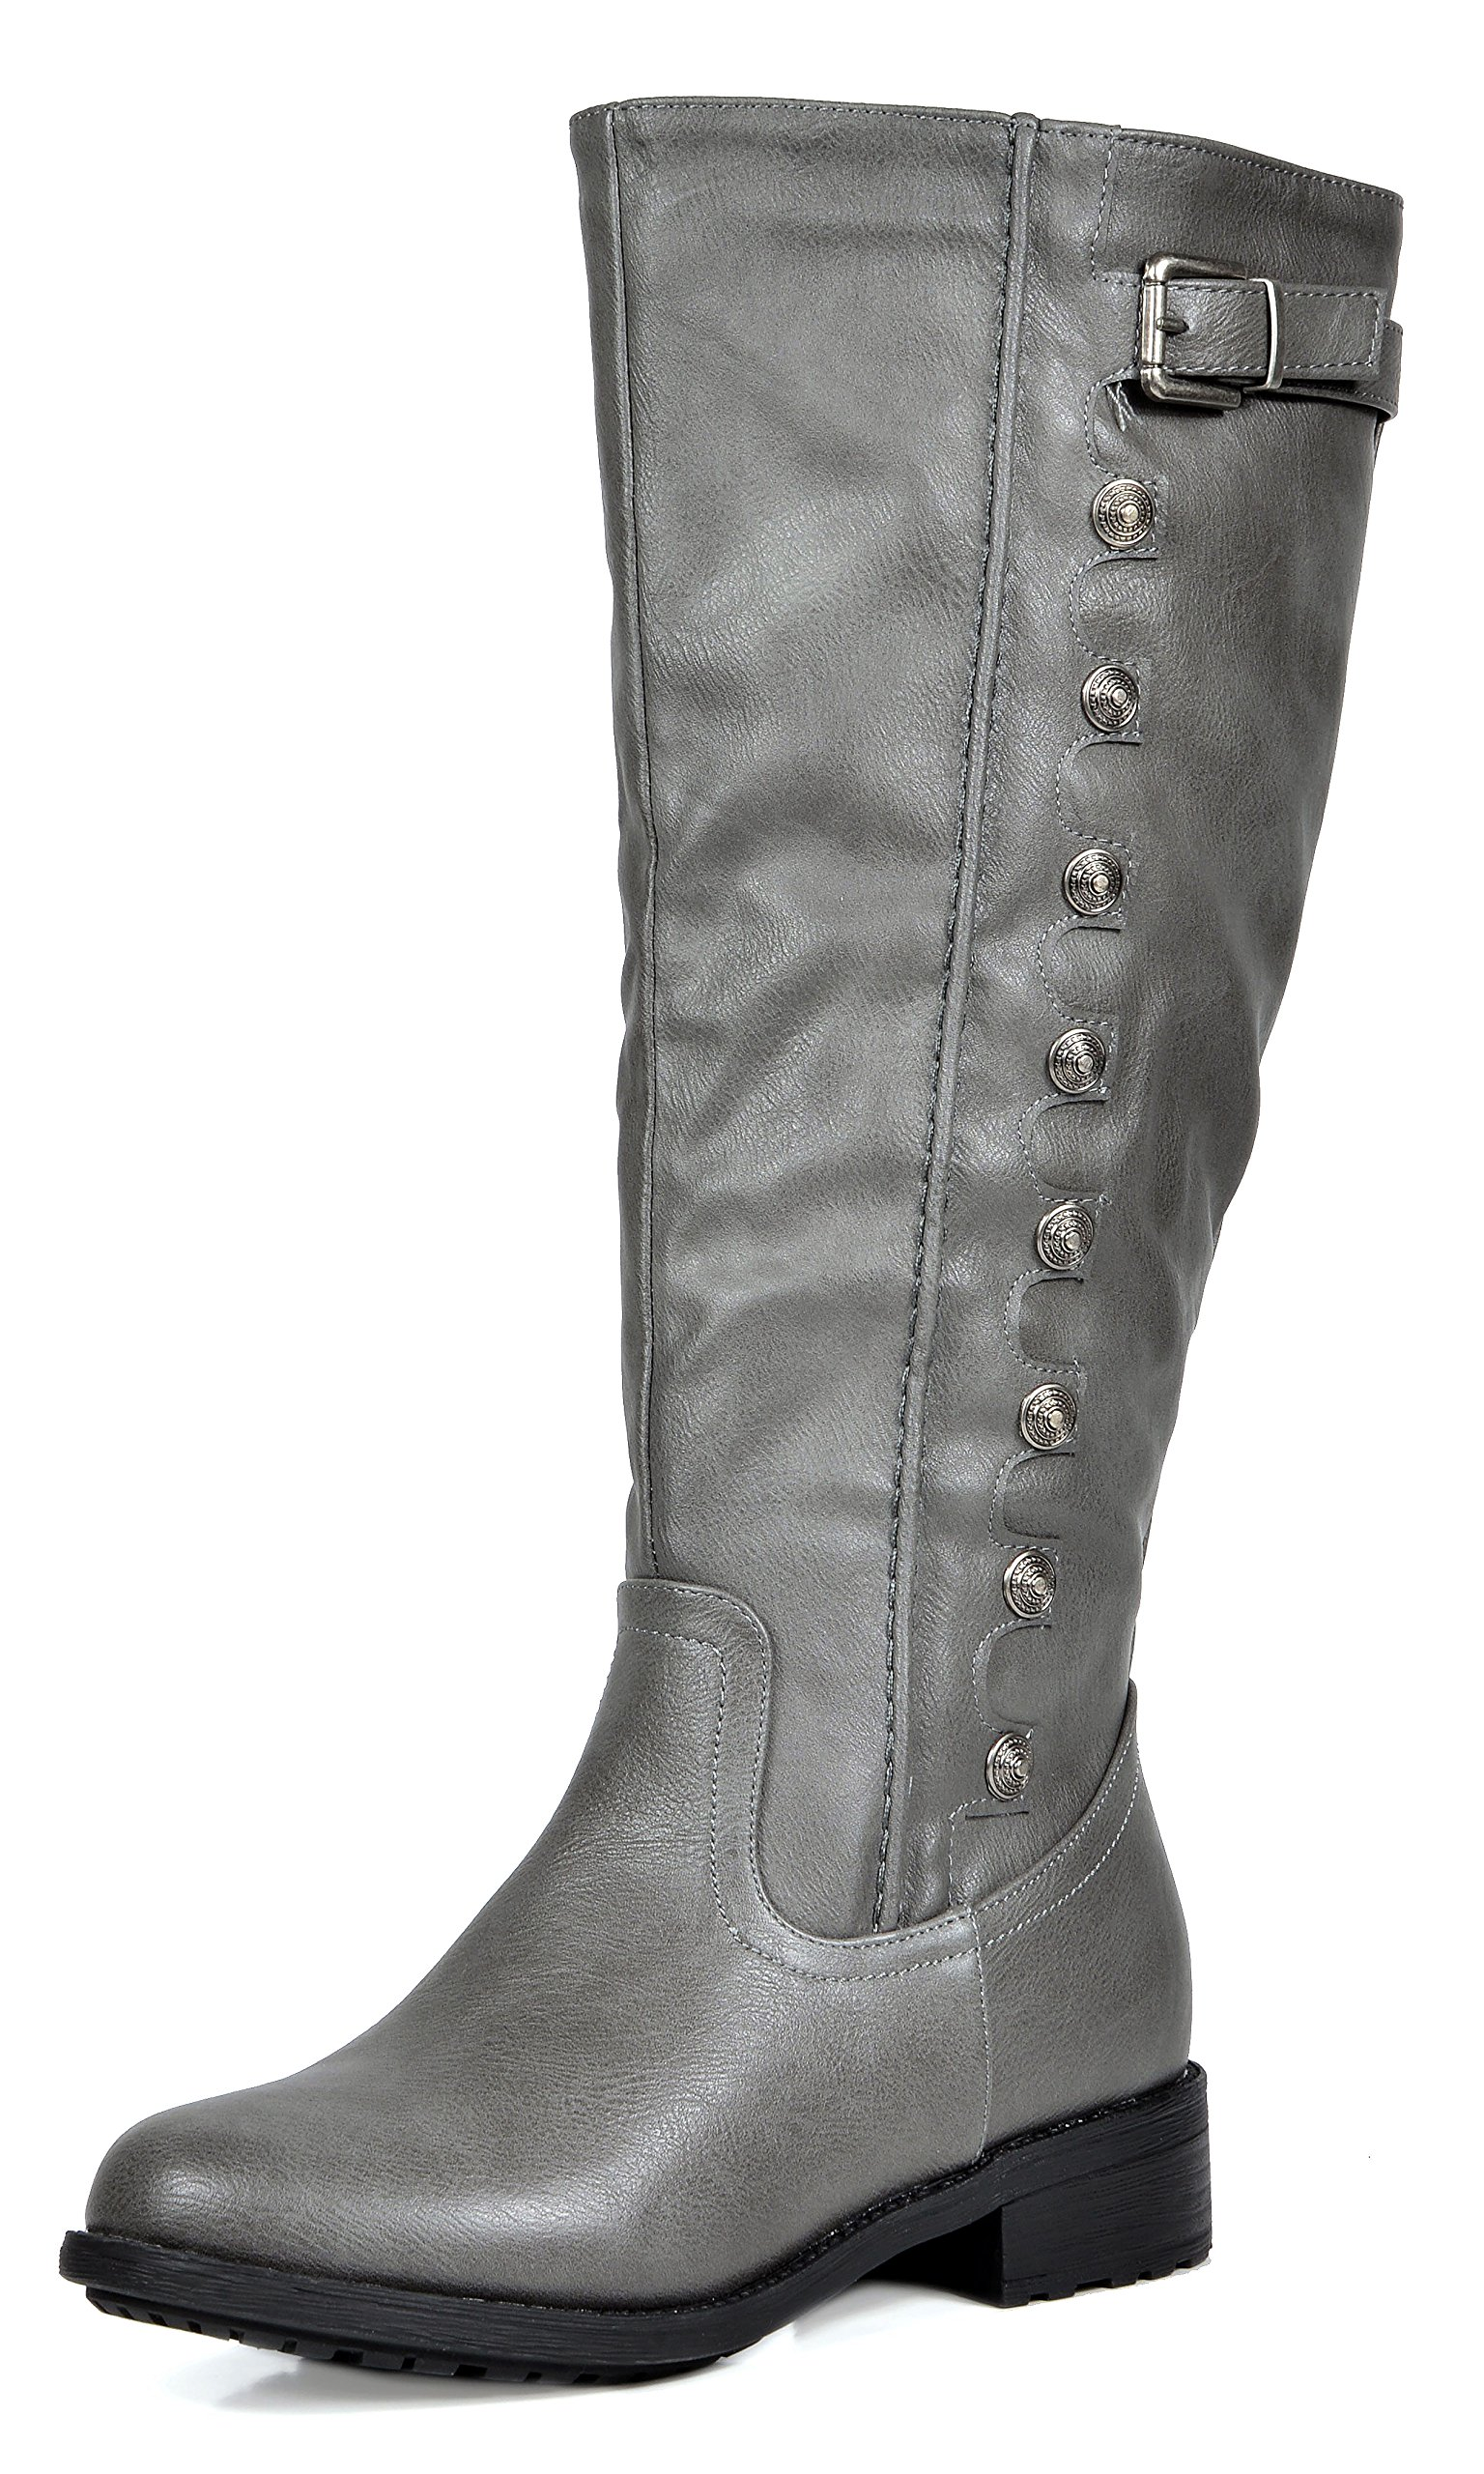 DREAM PAIRS Women's Army Grey Pu Leather Knee High Winter Riding Boots Size 8.5 M US